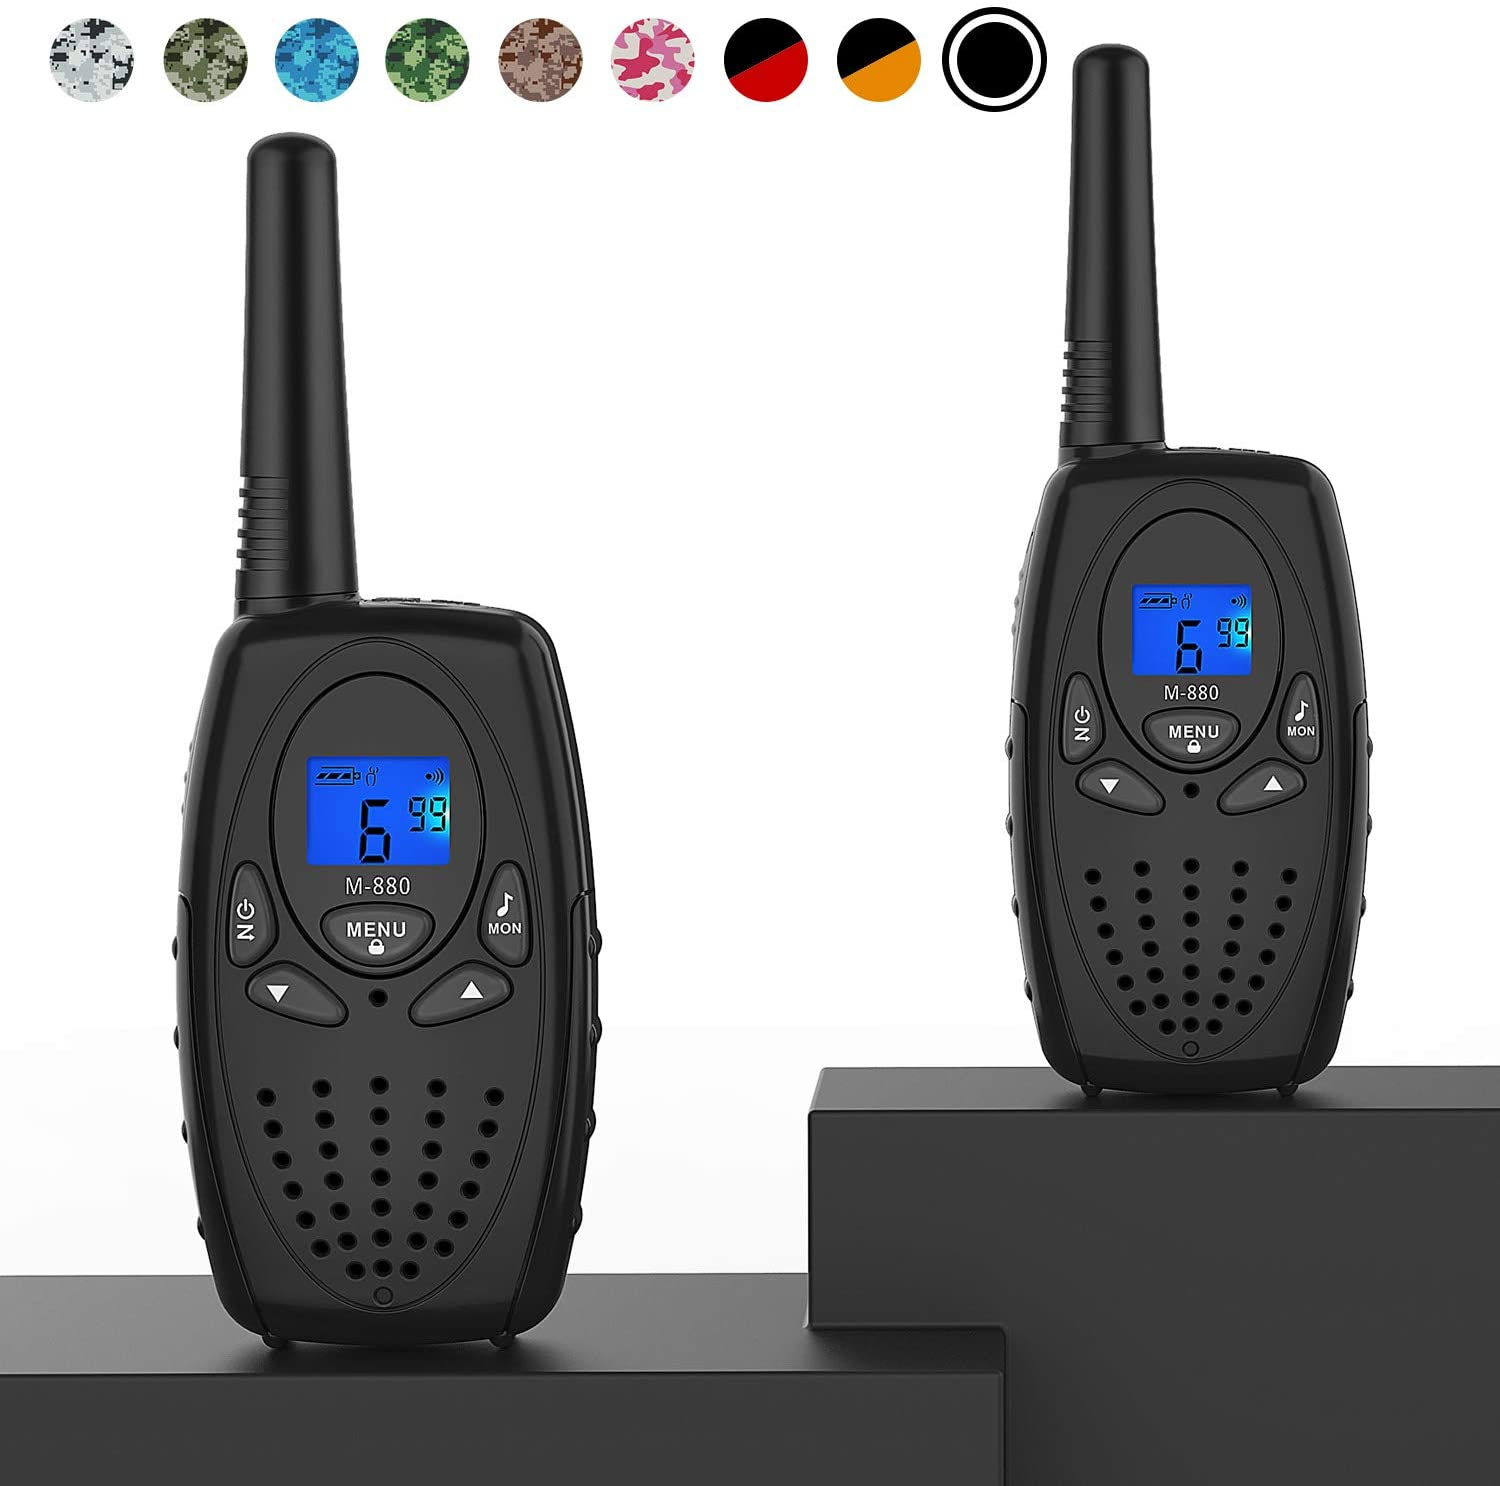 Topsung Walkie Talkies for Adults, M880 FRS Two Way Radio Long Range with VOX Belt Clip/Hand Held Walky Talky with 22 Channel 3 Mile for Family Home Cruise Ship Camping Hiking (Black 2 in 1)